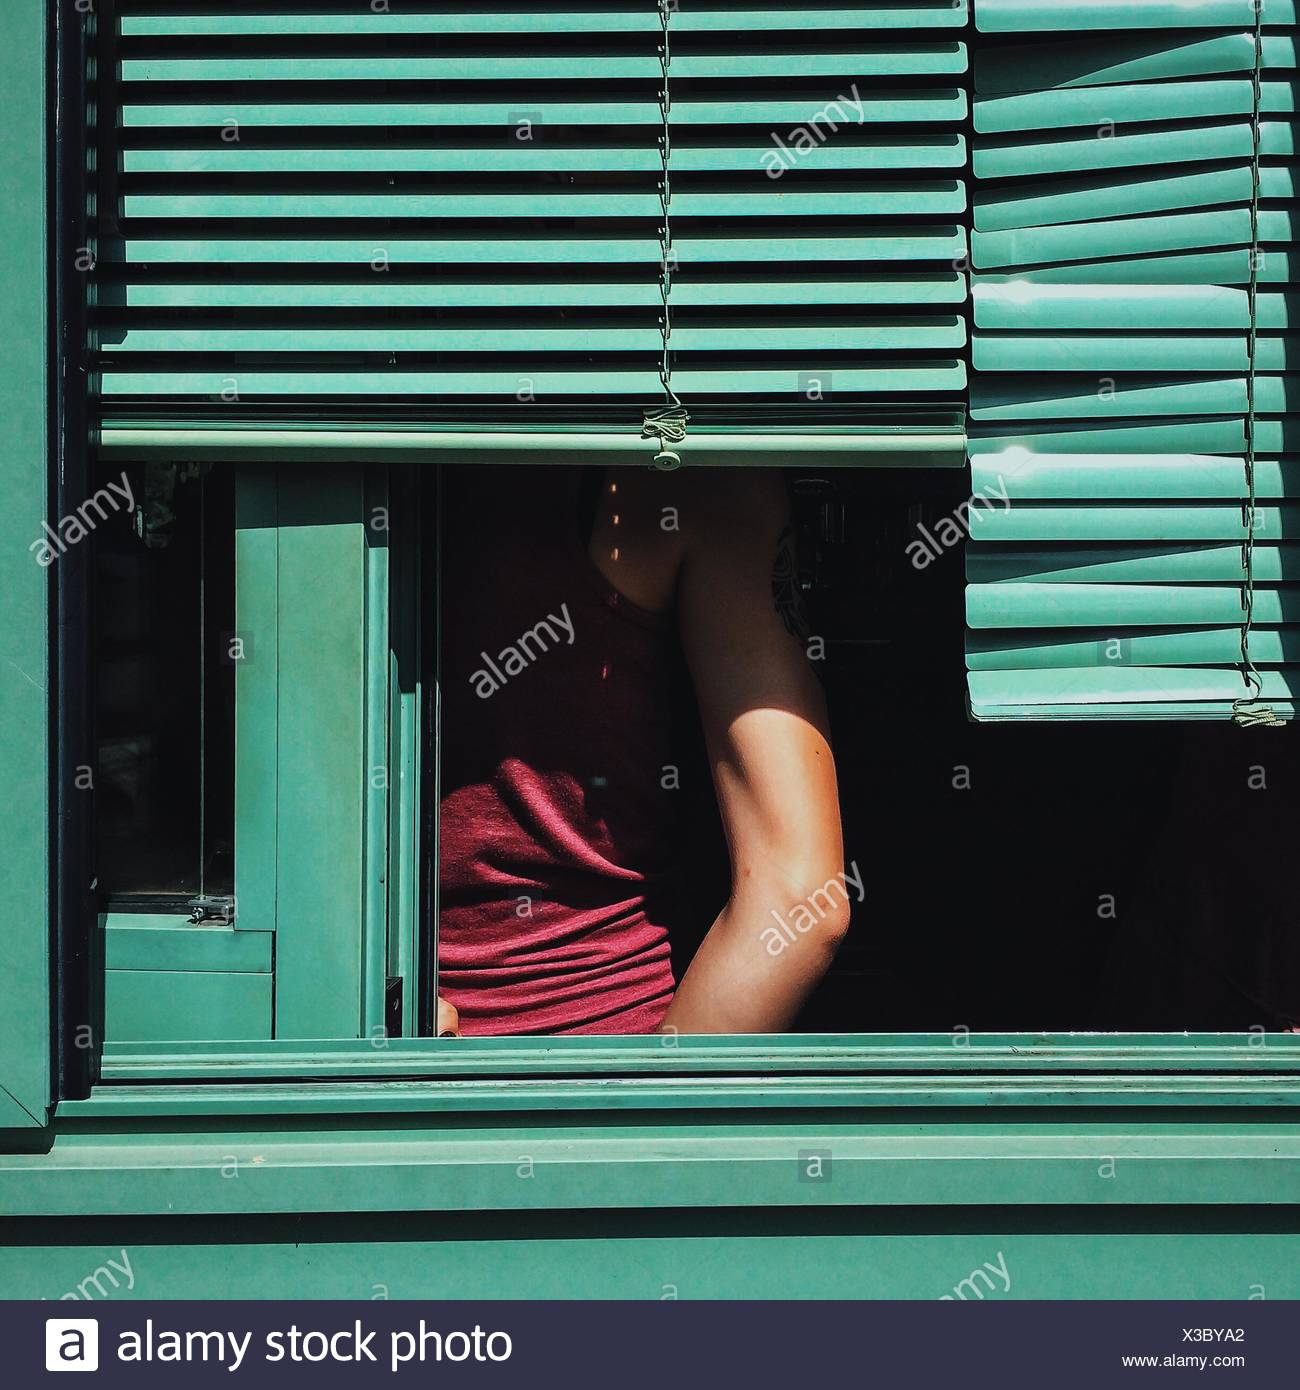 Midsection Of Man Seen Through Window - Stock Image